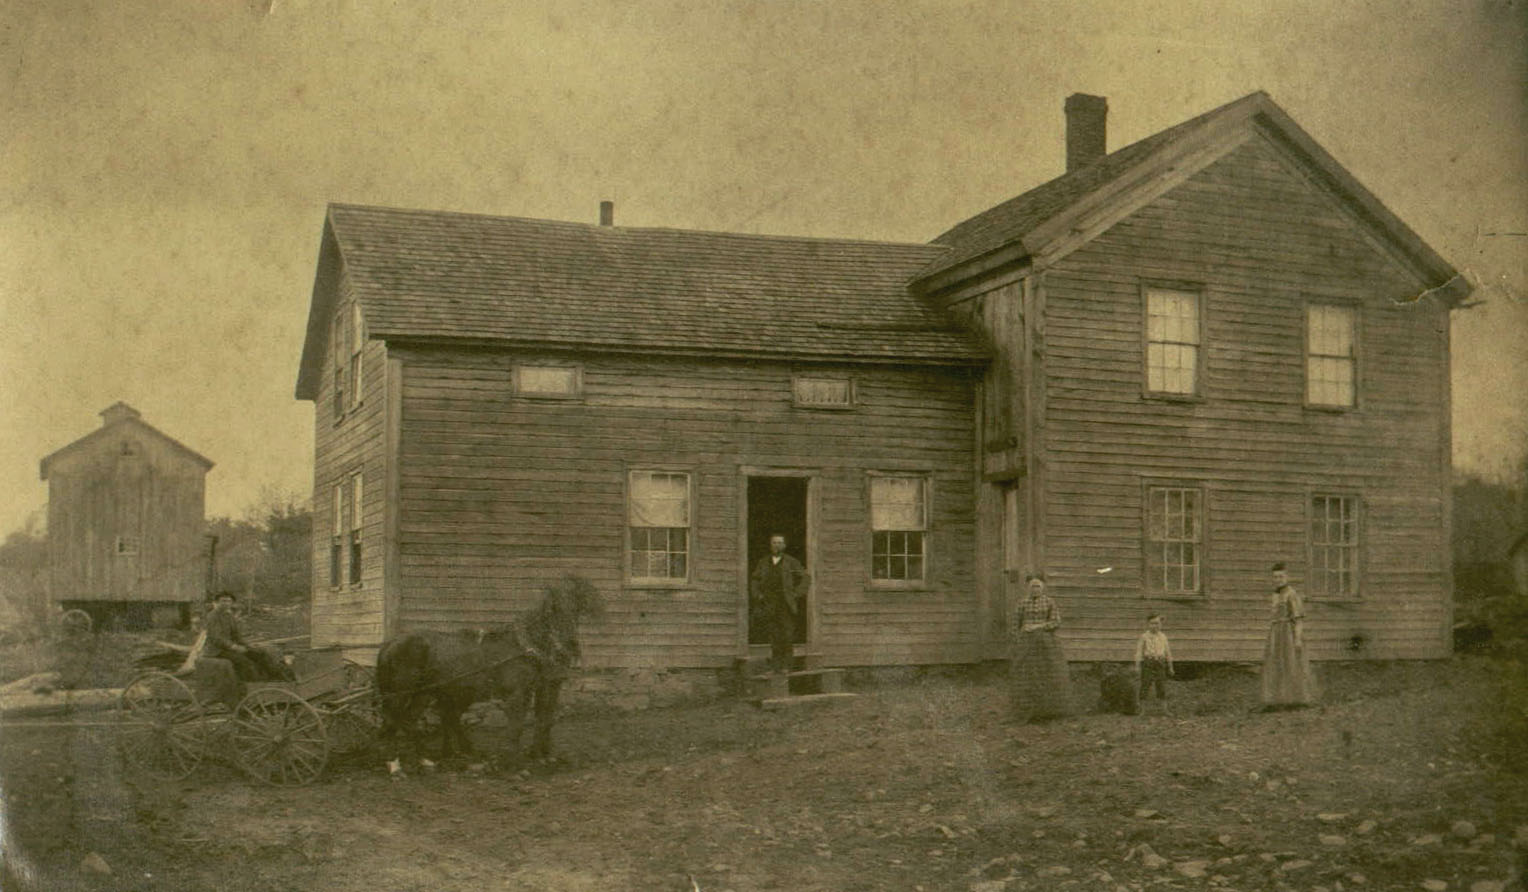 New york oswego county parish - The Farm Of Abraham T House In Parish Oswego County From Left William House In Carriage Abe T House In Front Of Door Louisa House Lewis House